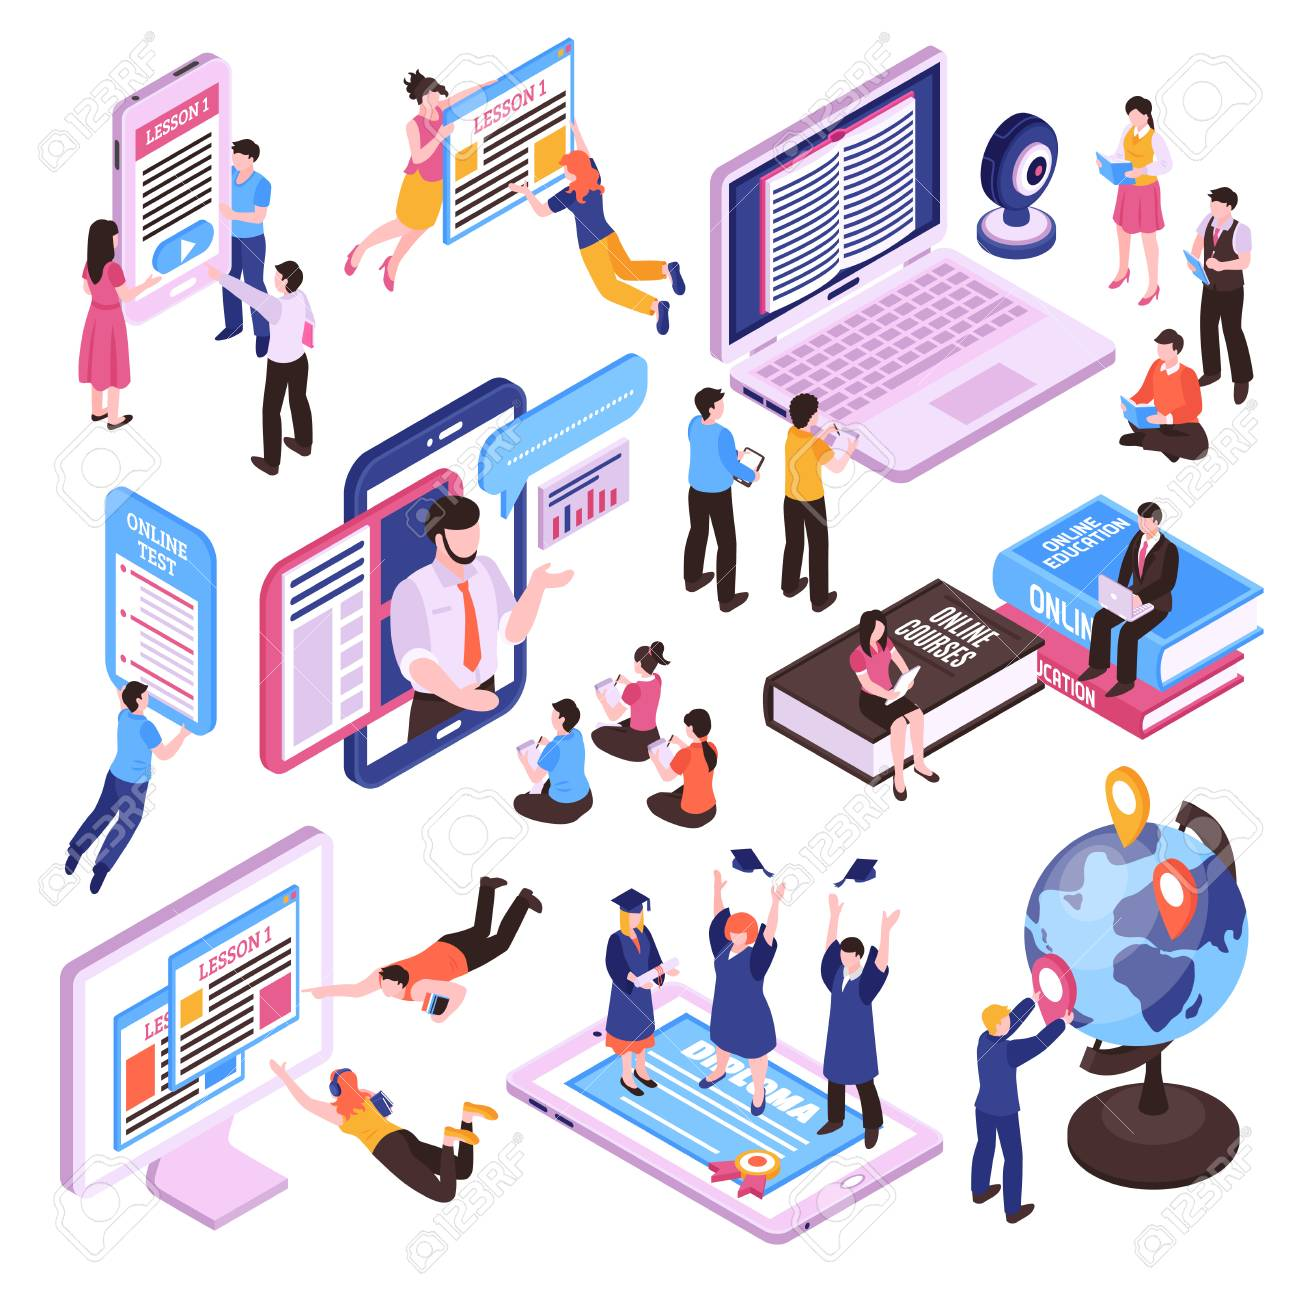 Online lessons isometric set of studying people using pc tablet and smartphone isolated vector illustration - 113305738